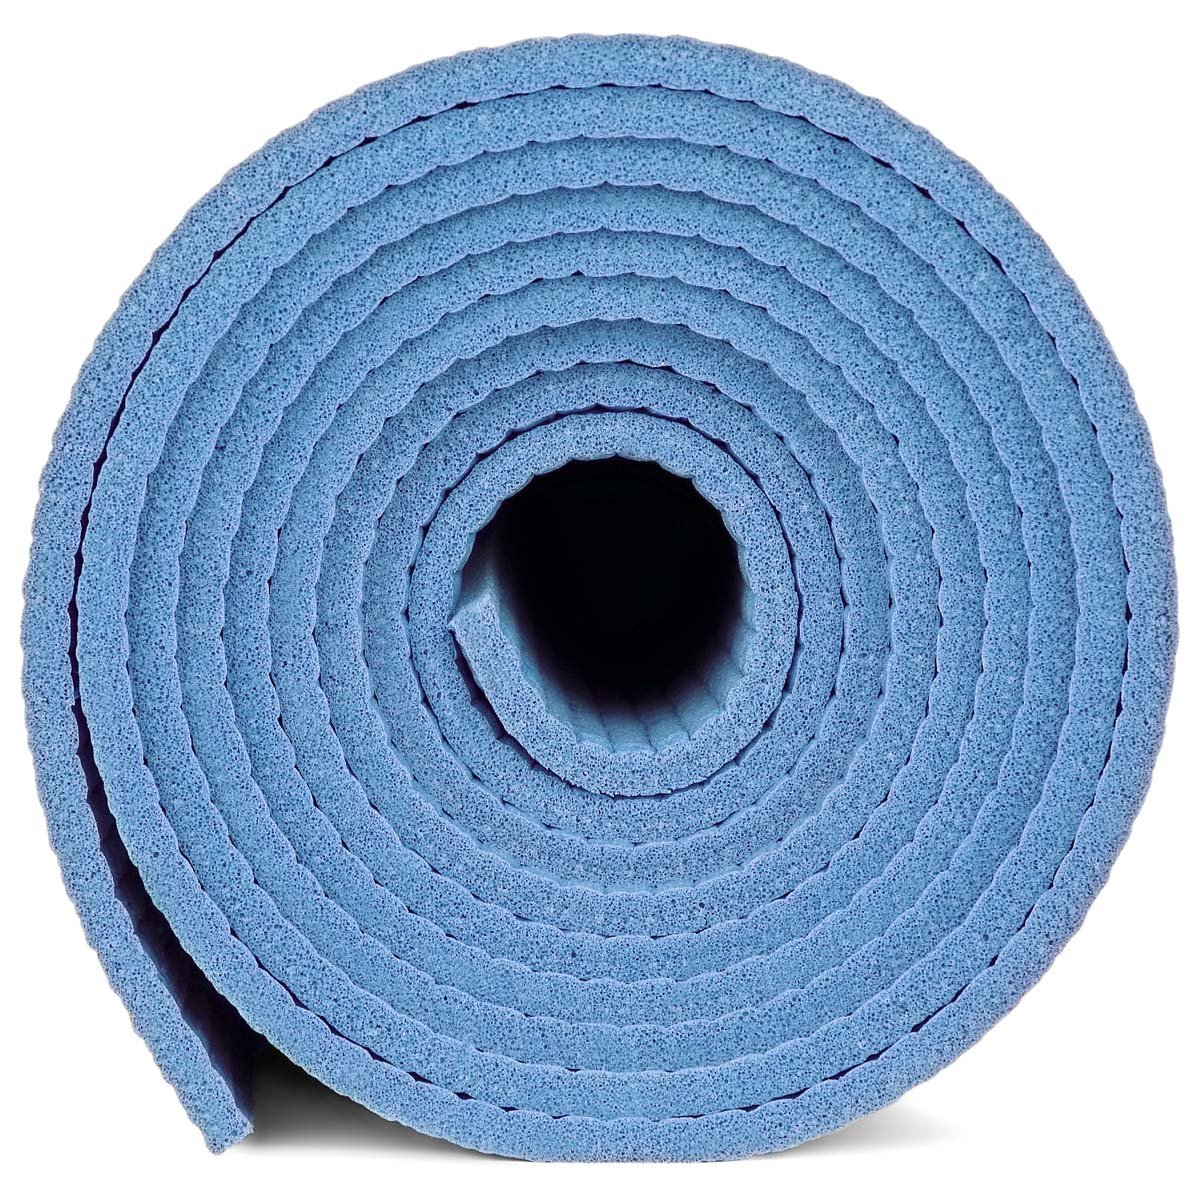 YogaAccessories 1//4 Thick High Density Deluxe Non Slip Exercise Pilates /& Yoga Mat